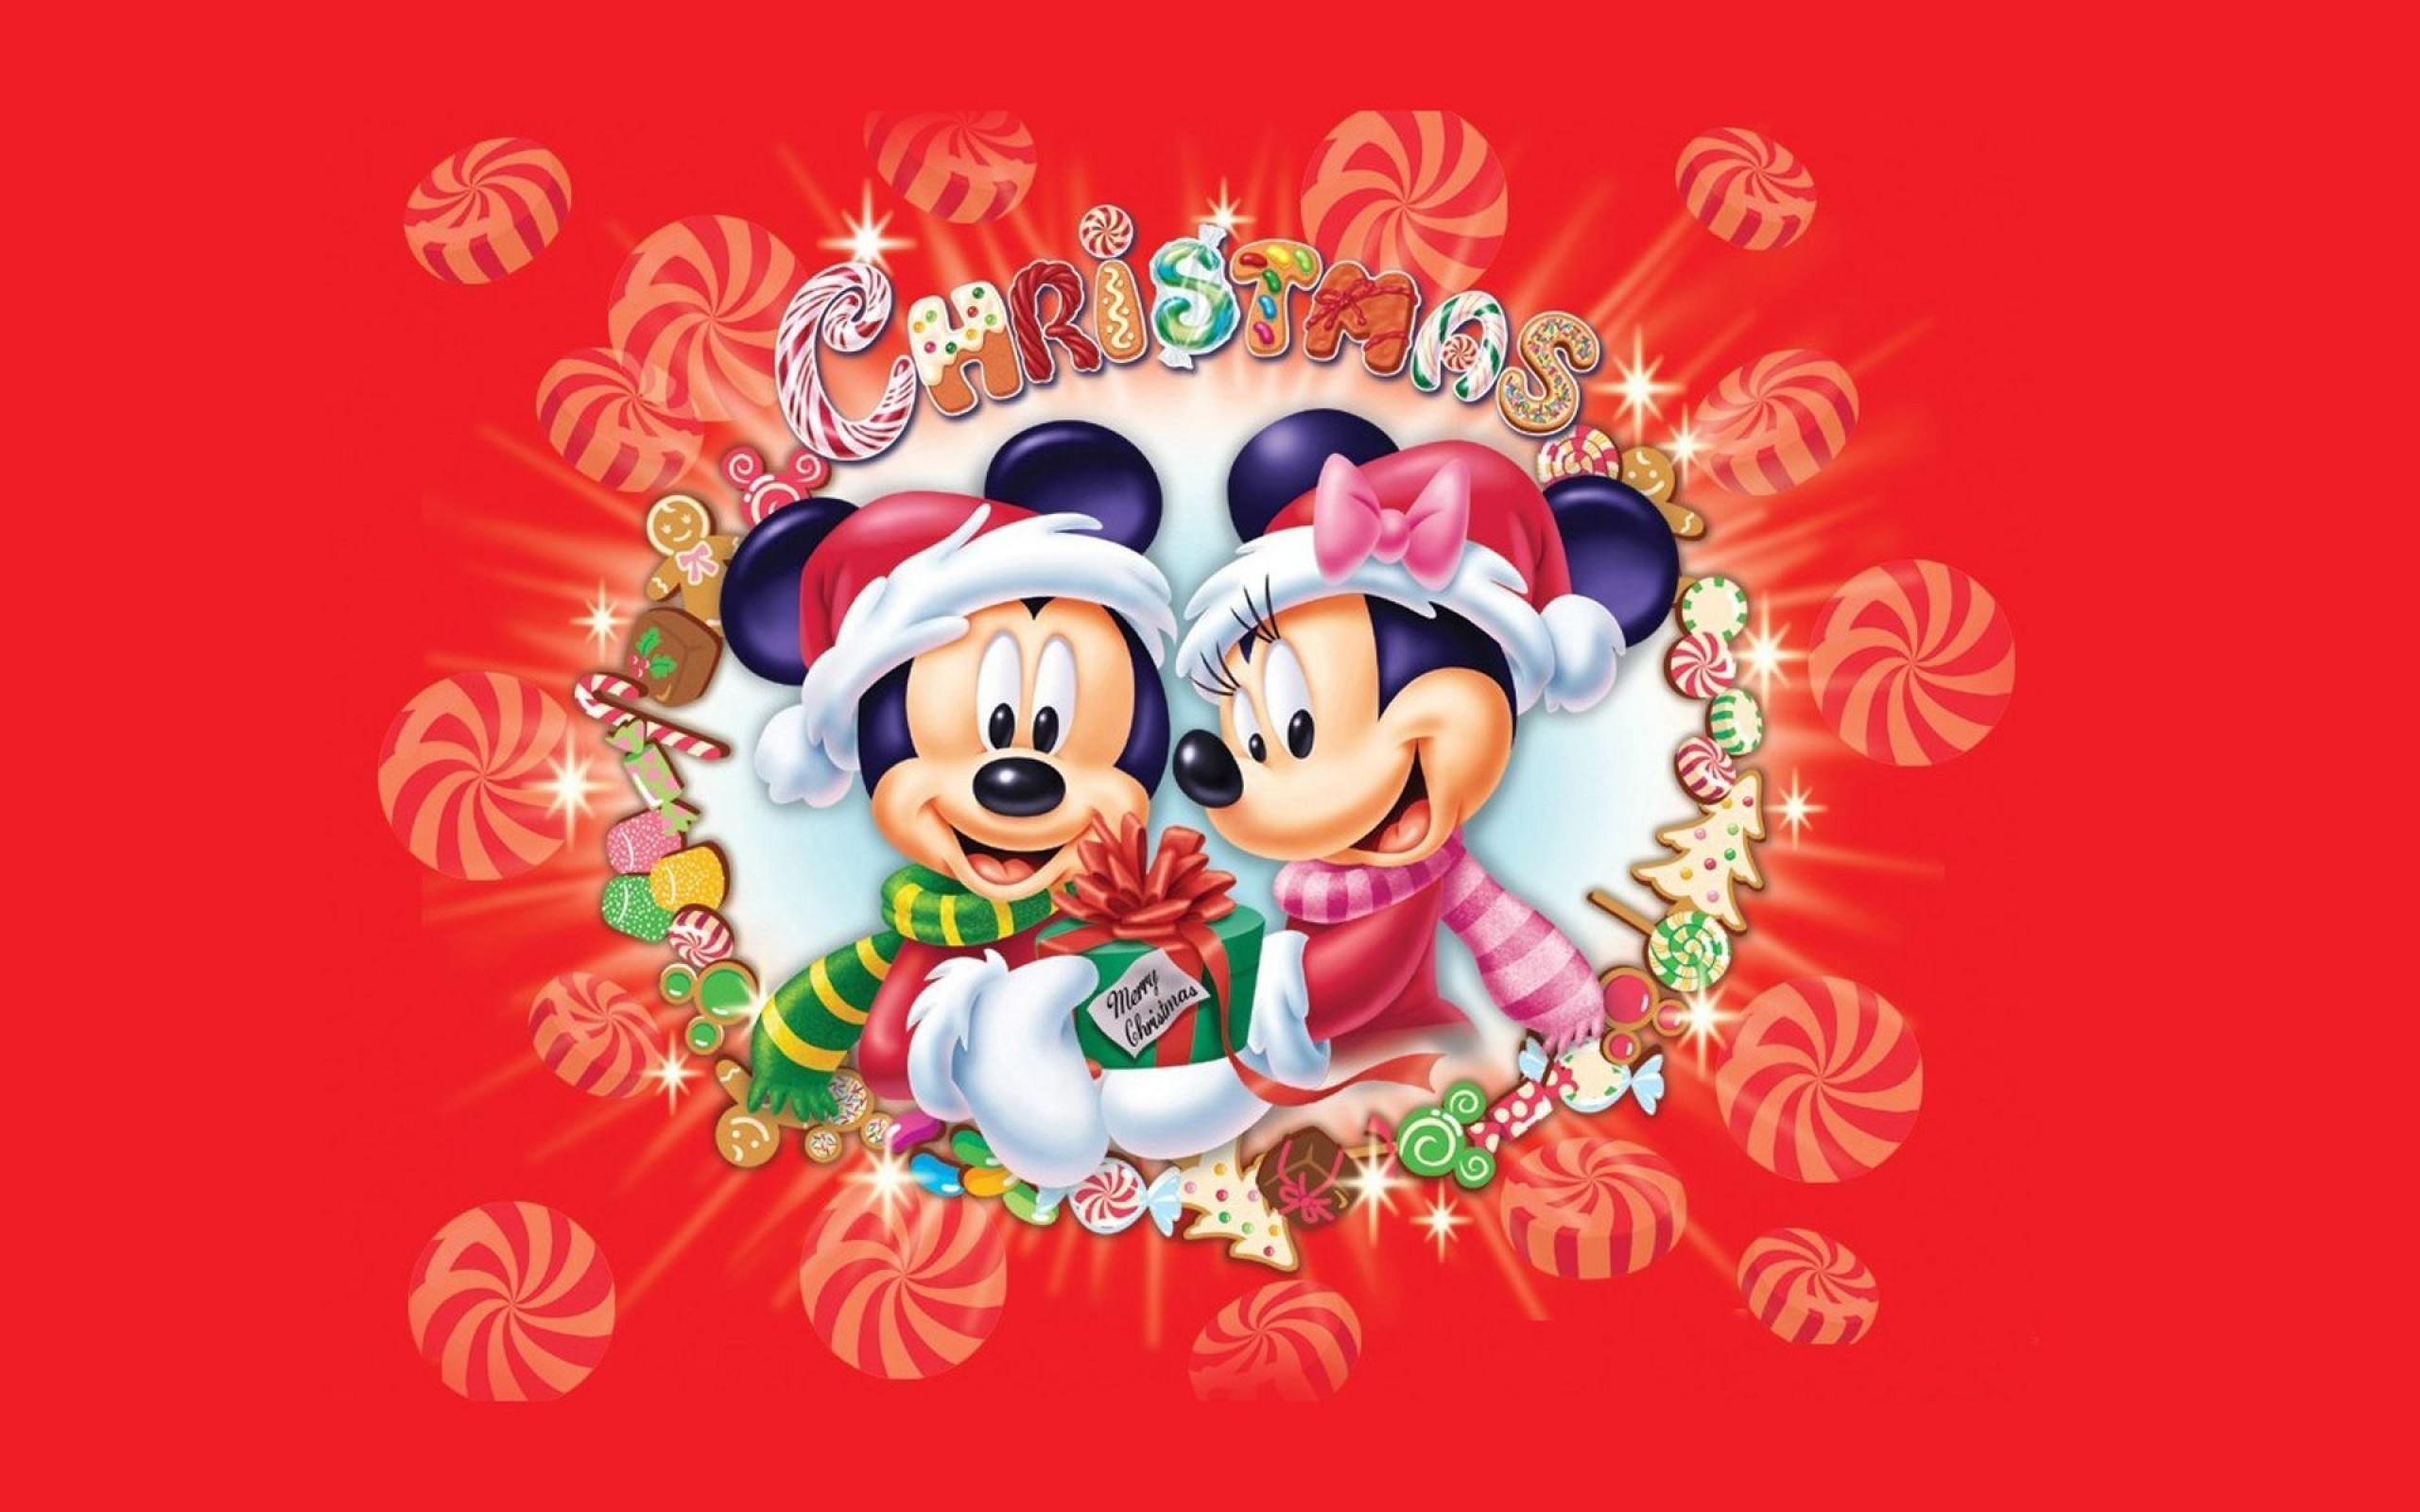 1920x1080 Cool Mickey Mouse Wallpaper 1680×1050 Mickey Mouse Wallpapers (50 Wallpapers) | Adorable · Download